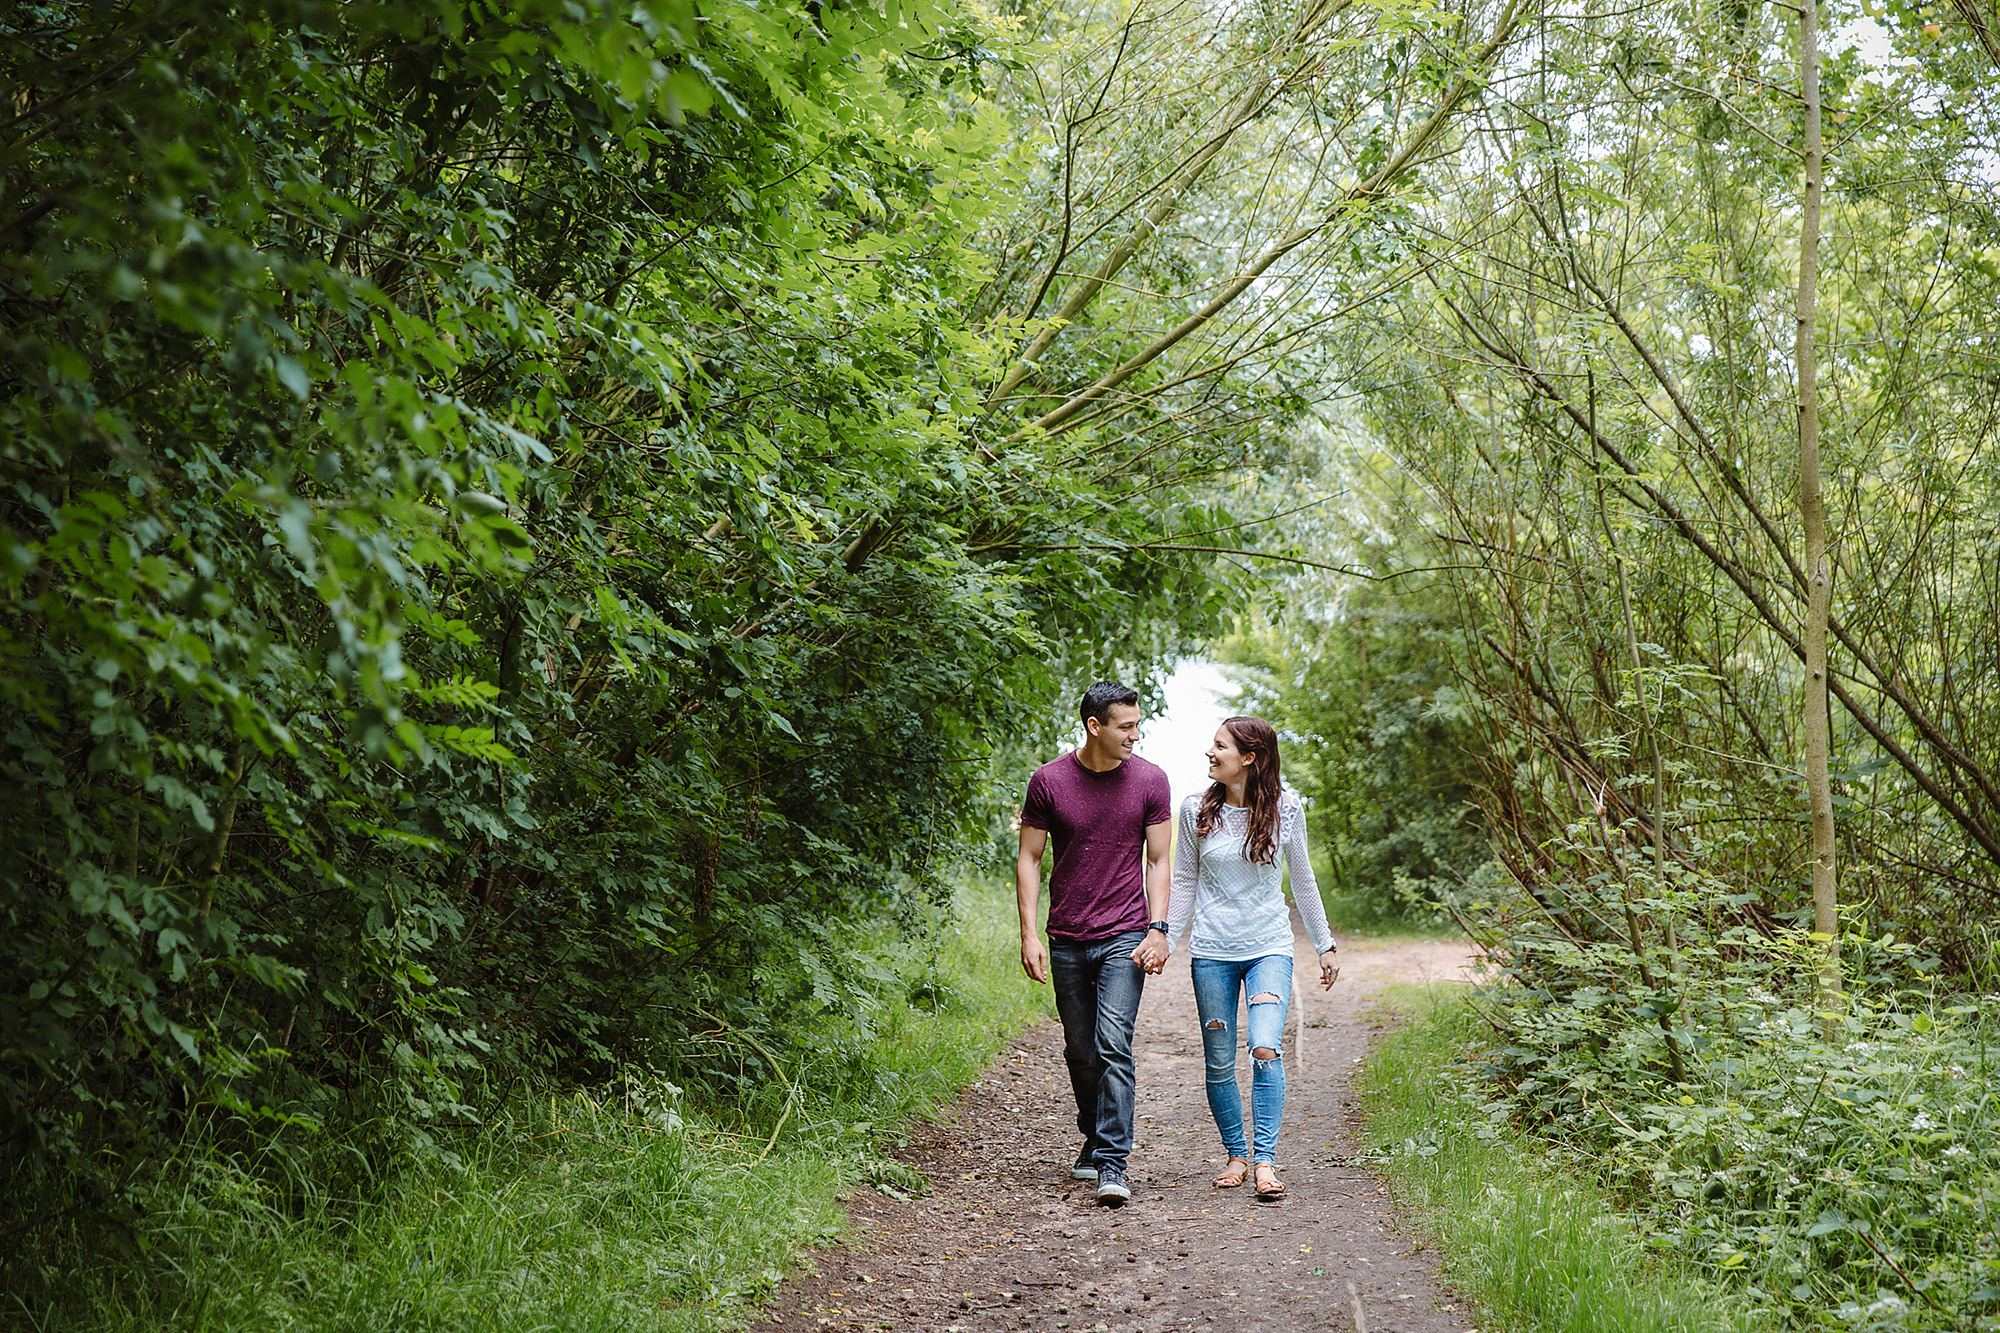 Countryside engagement photography - a couple walking together